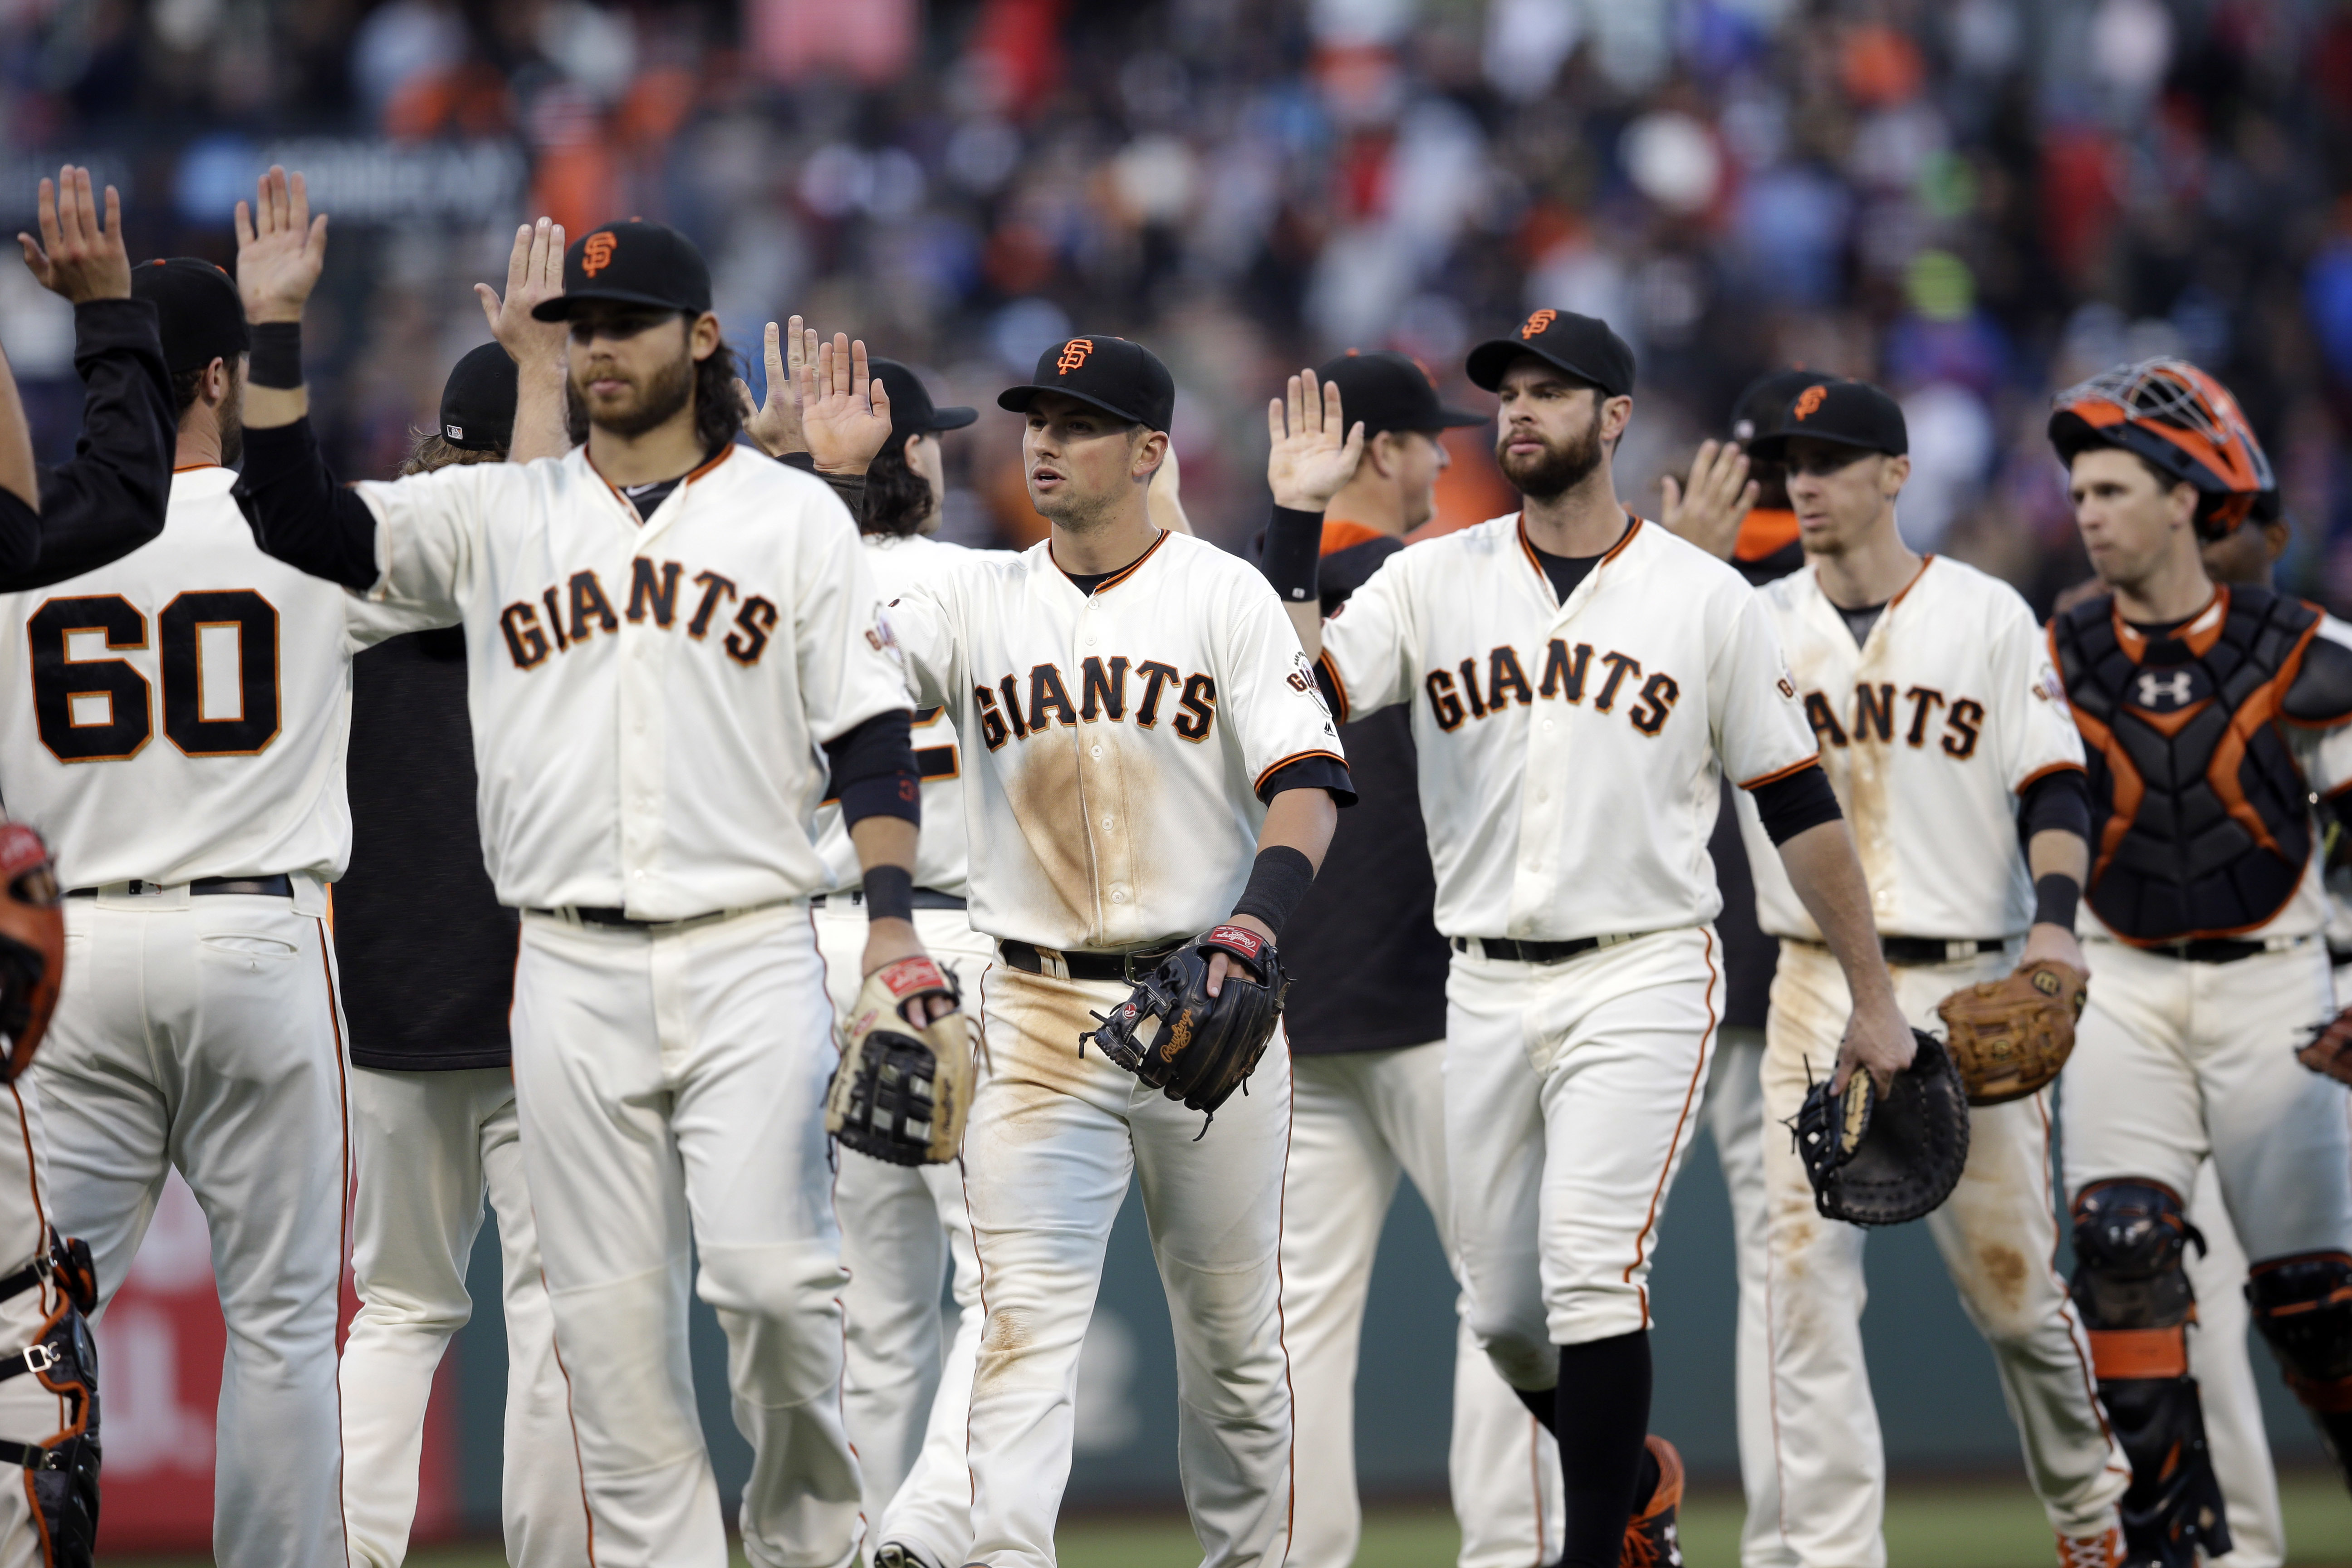 The San Francisco Giants celebrate after a 1-0 win over the Chicago Cubs during a baseball game, Sunday, May 22, 2016, in San Francisco. (AP Photo/Marcio Jose Sanchez)